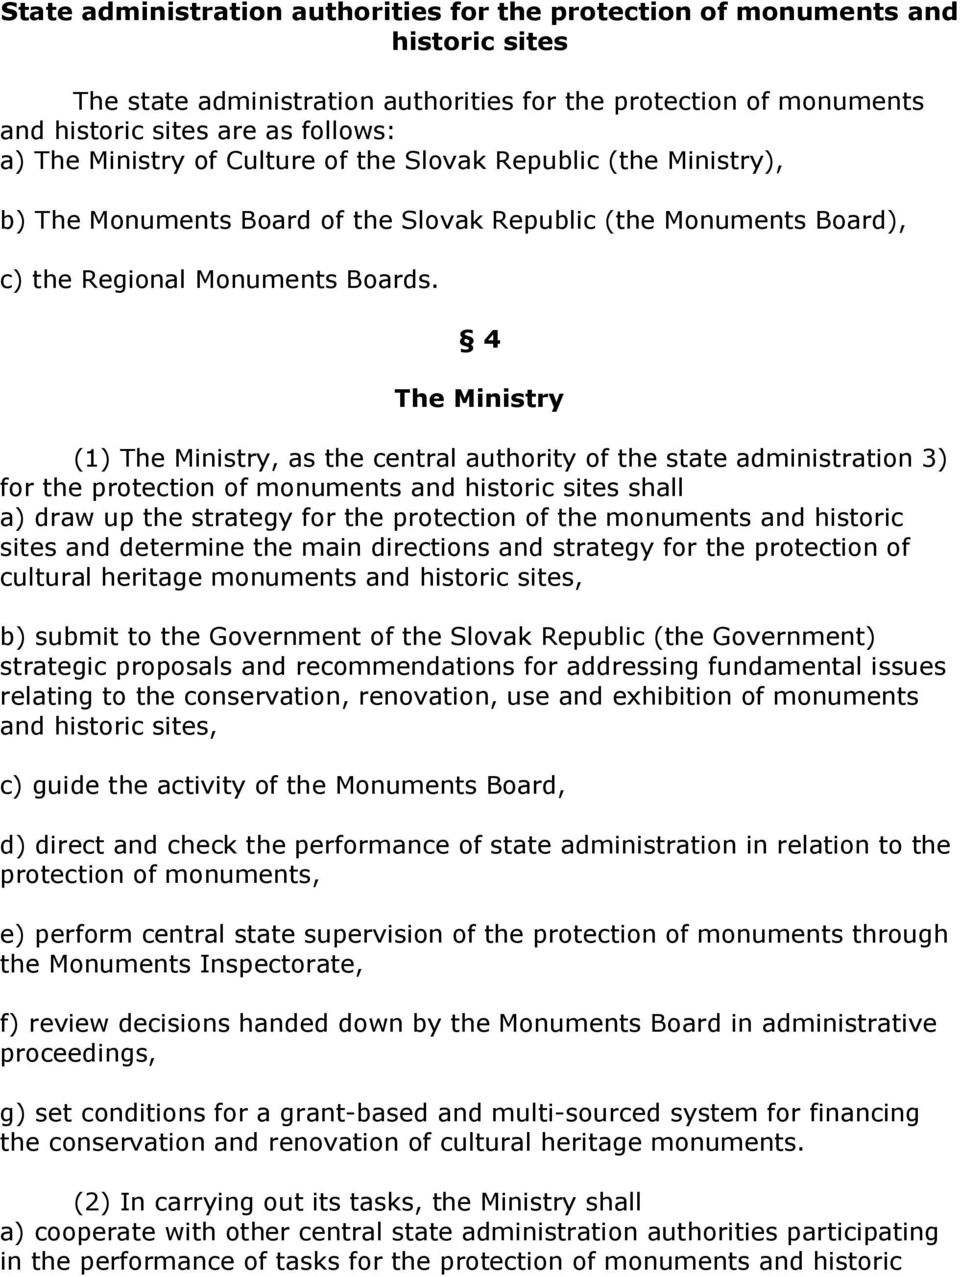 4 The Ministry (1) The Ministry, as the central authority of the state administration 3) for the protection of monuments and historic sites shall a) draw up the strategy for the protection of the